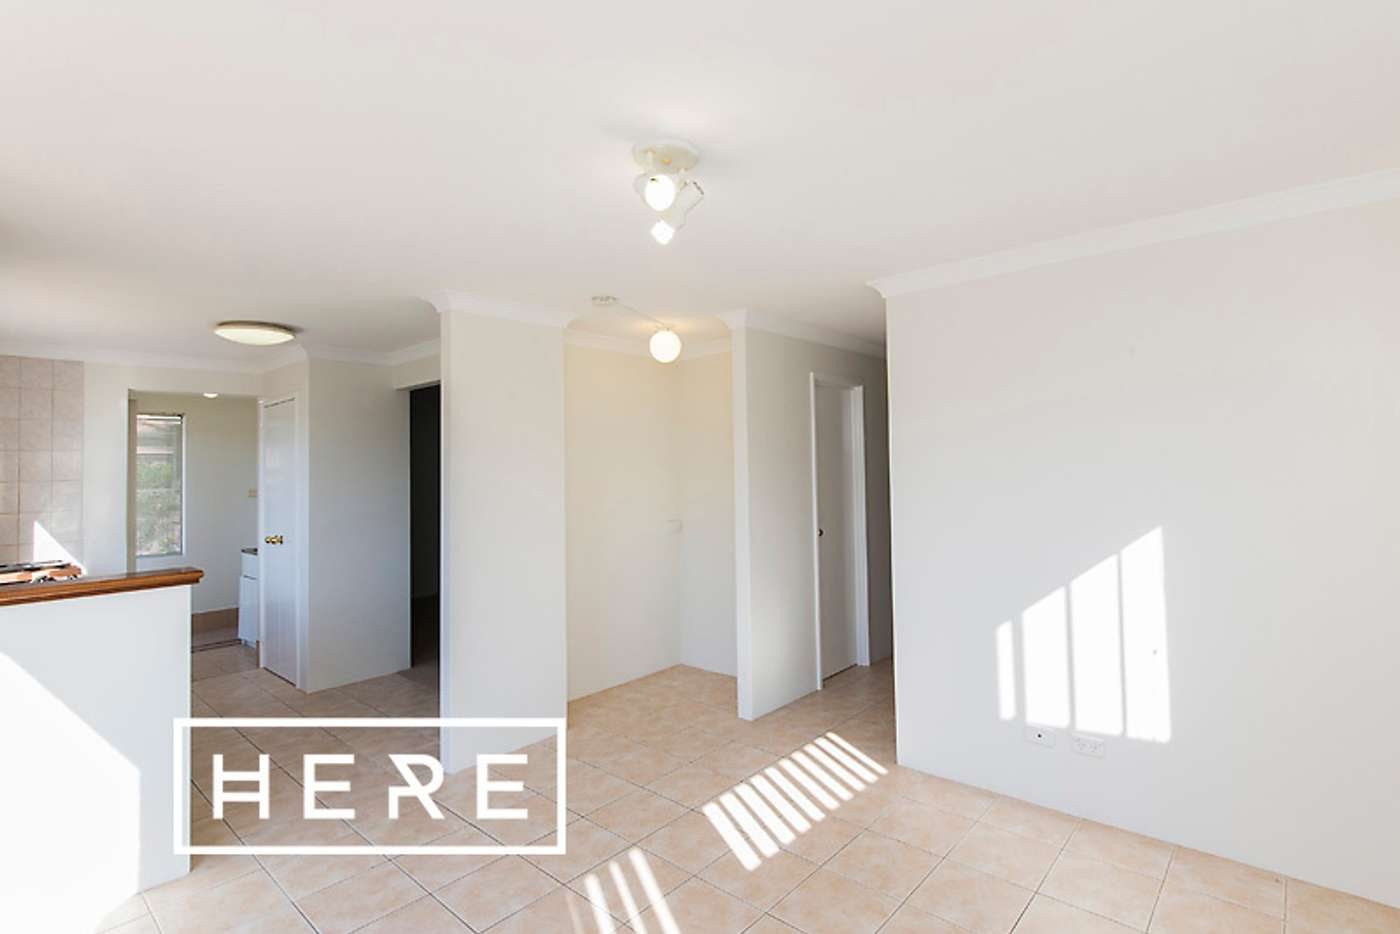 Seventh view of Homely house listing, 4 Tomito Court, Ascot WA 6104